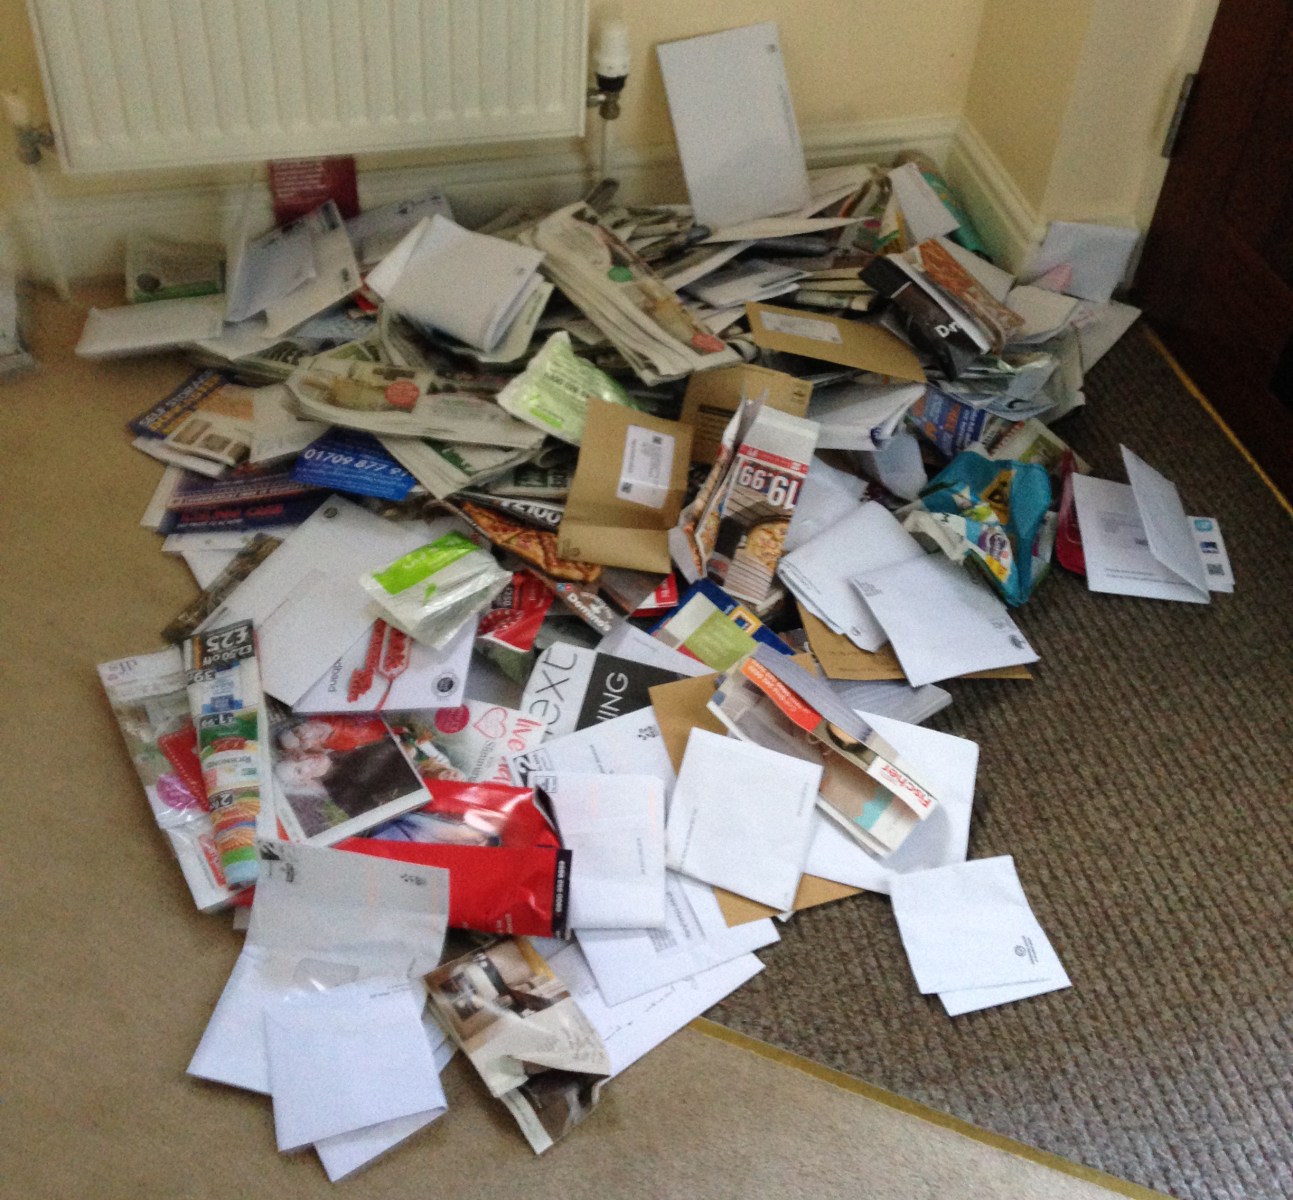 Tonnes of mail left behind